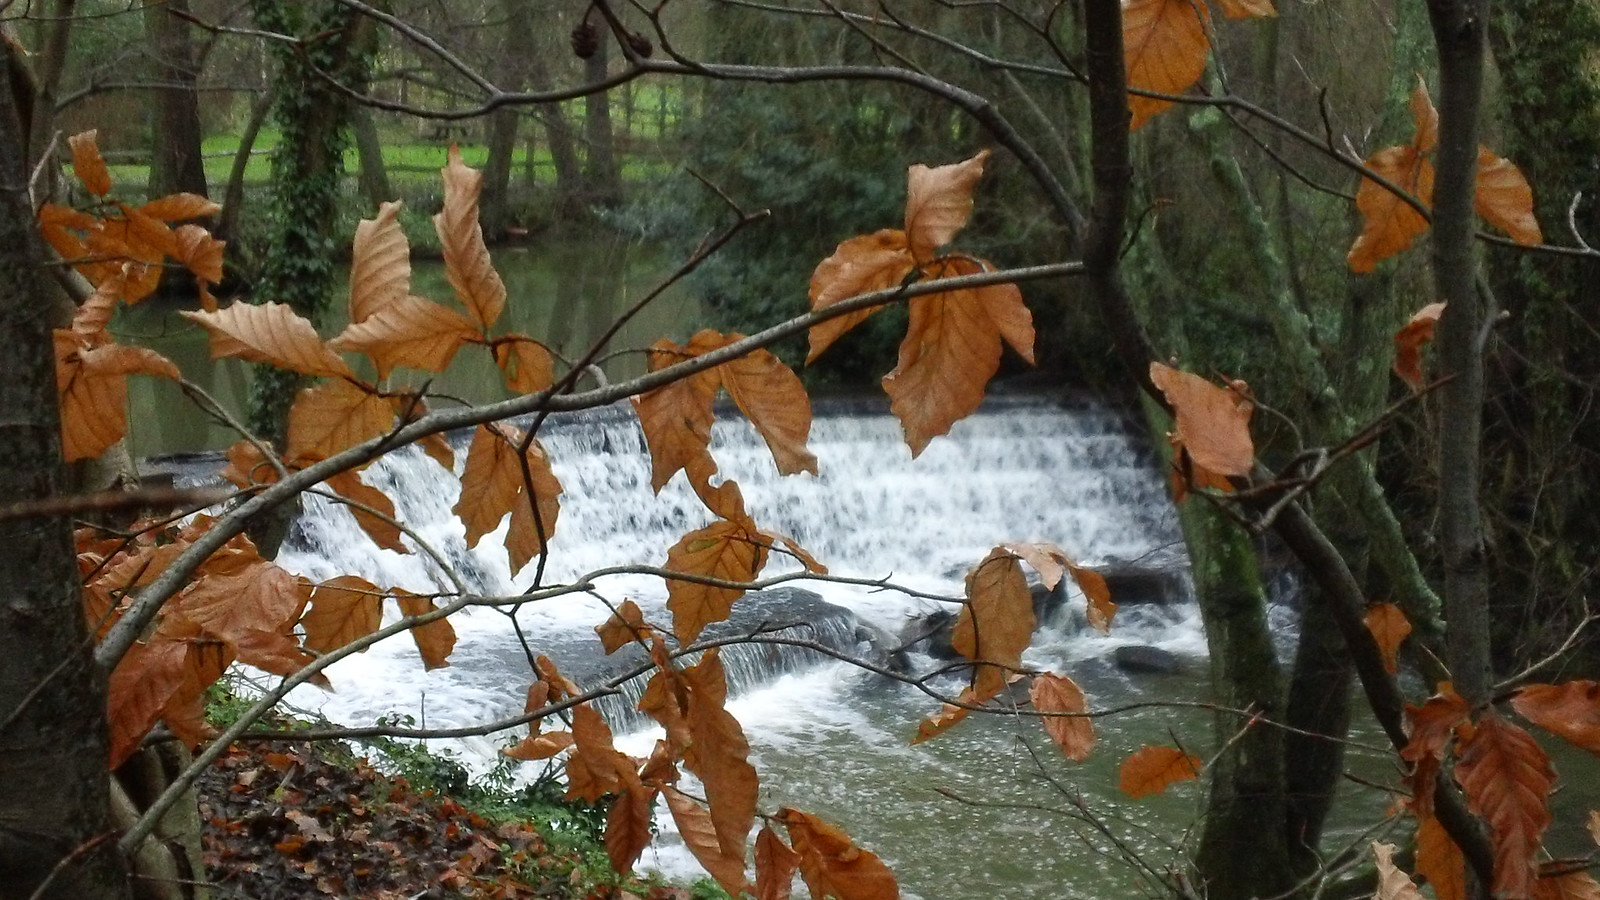 Weir with brown leaves